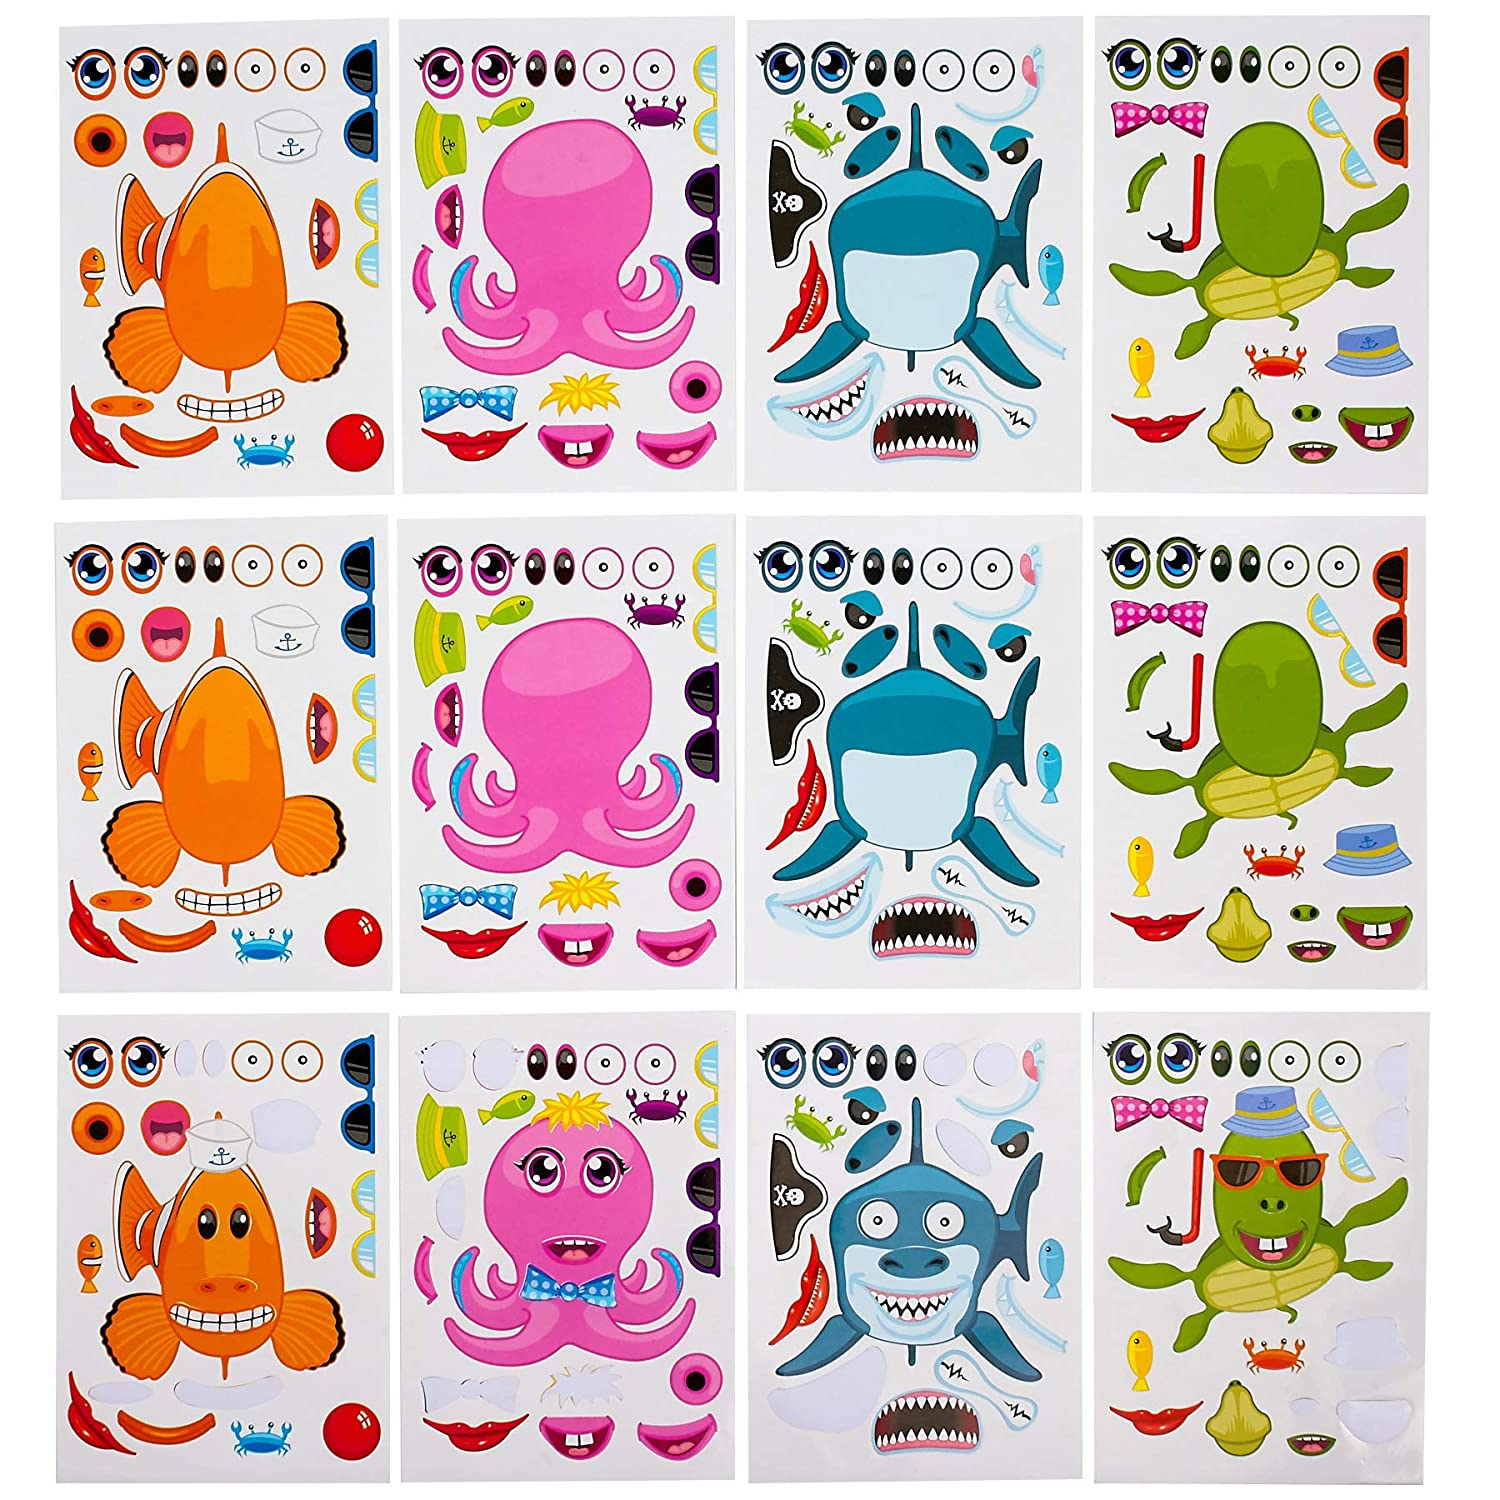 Make your own stickers make a sea creature fish sticker sheets 12 assorted for kids boys girls party favors arts crafts home playing